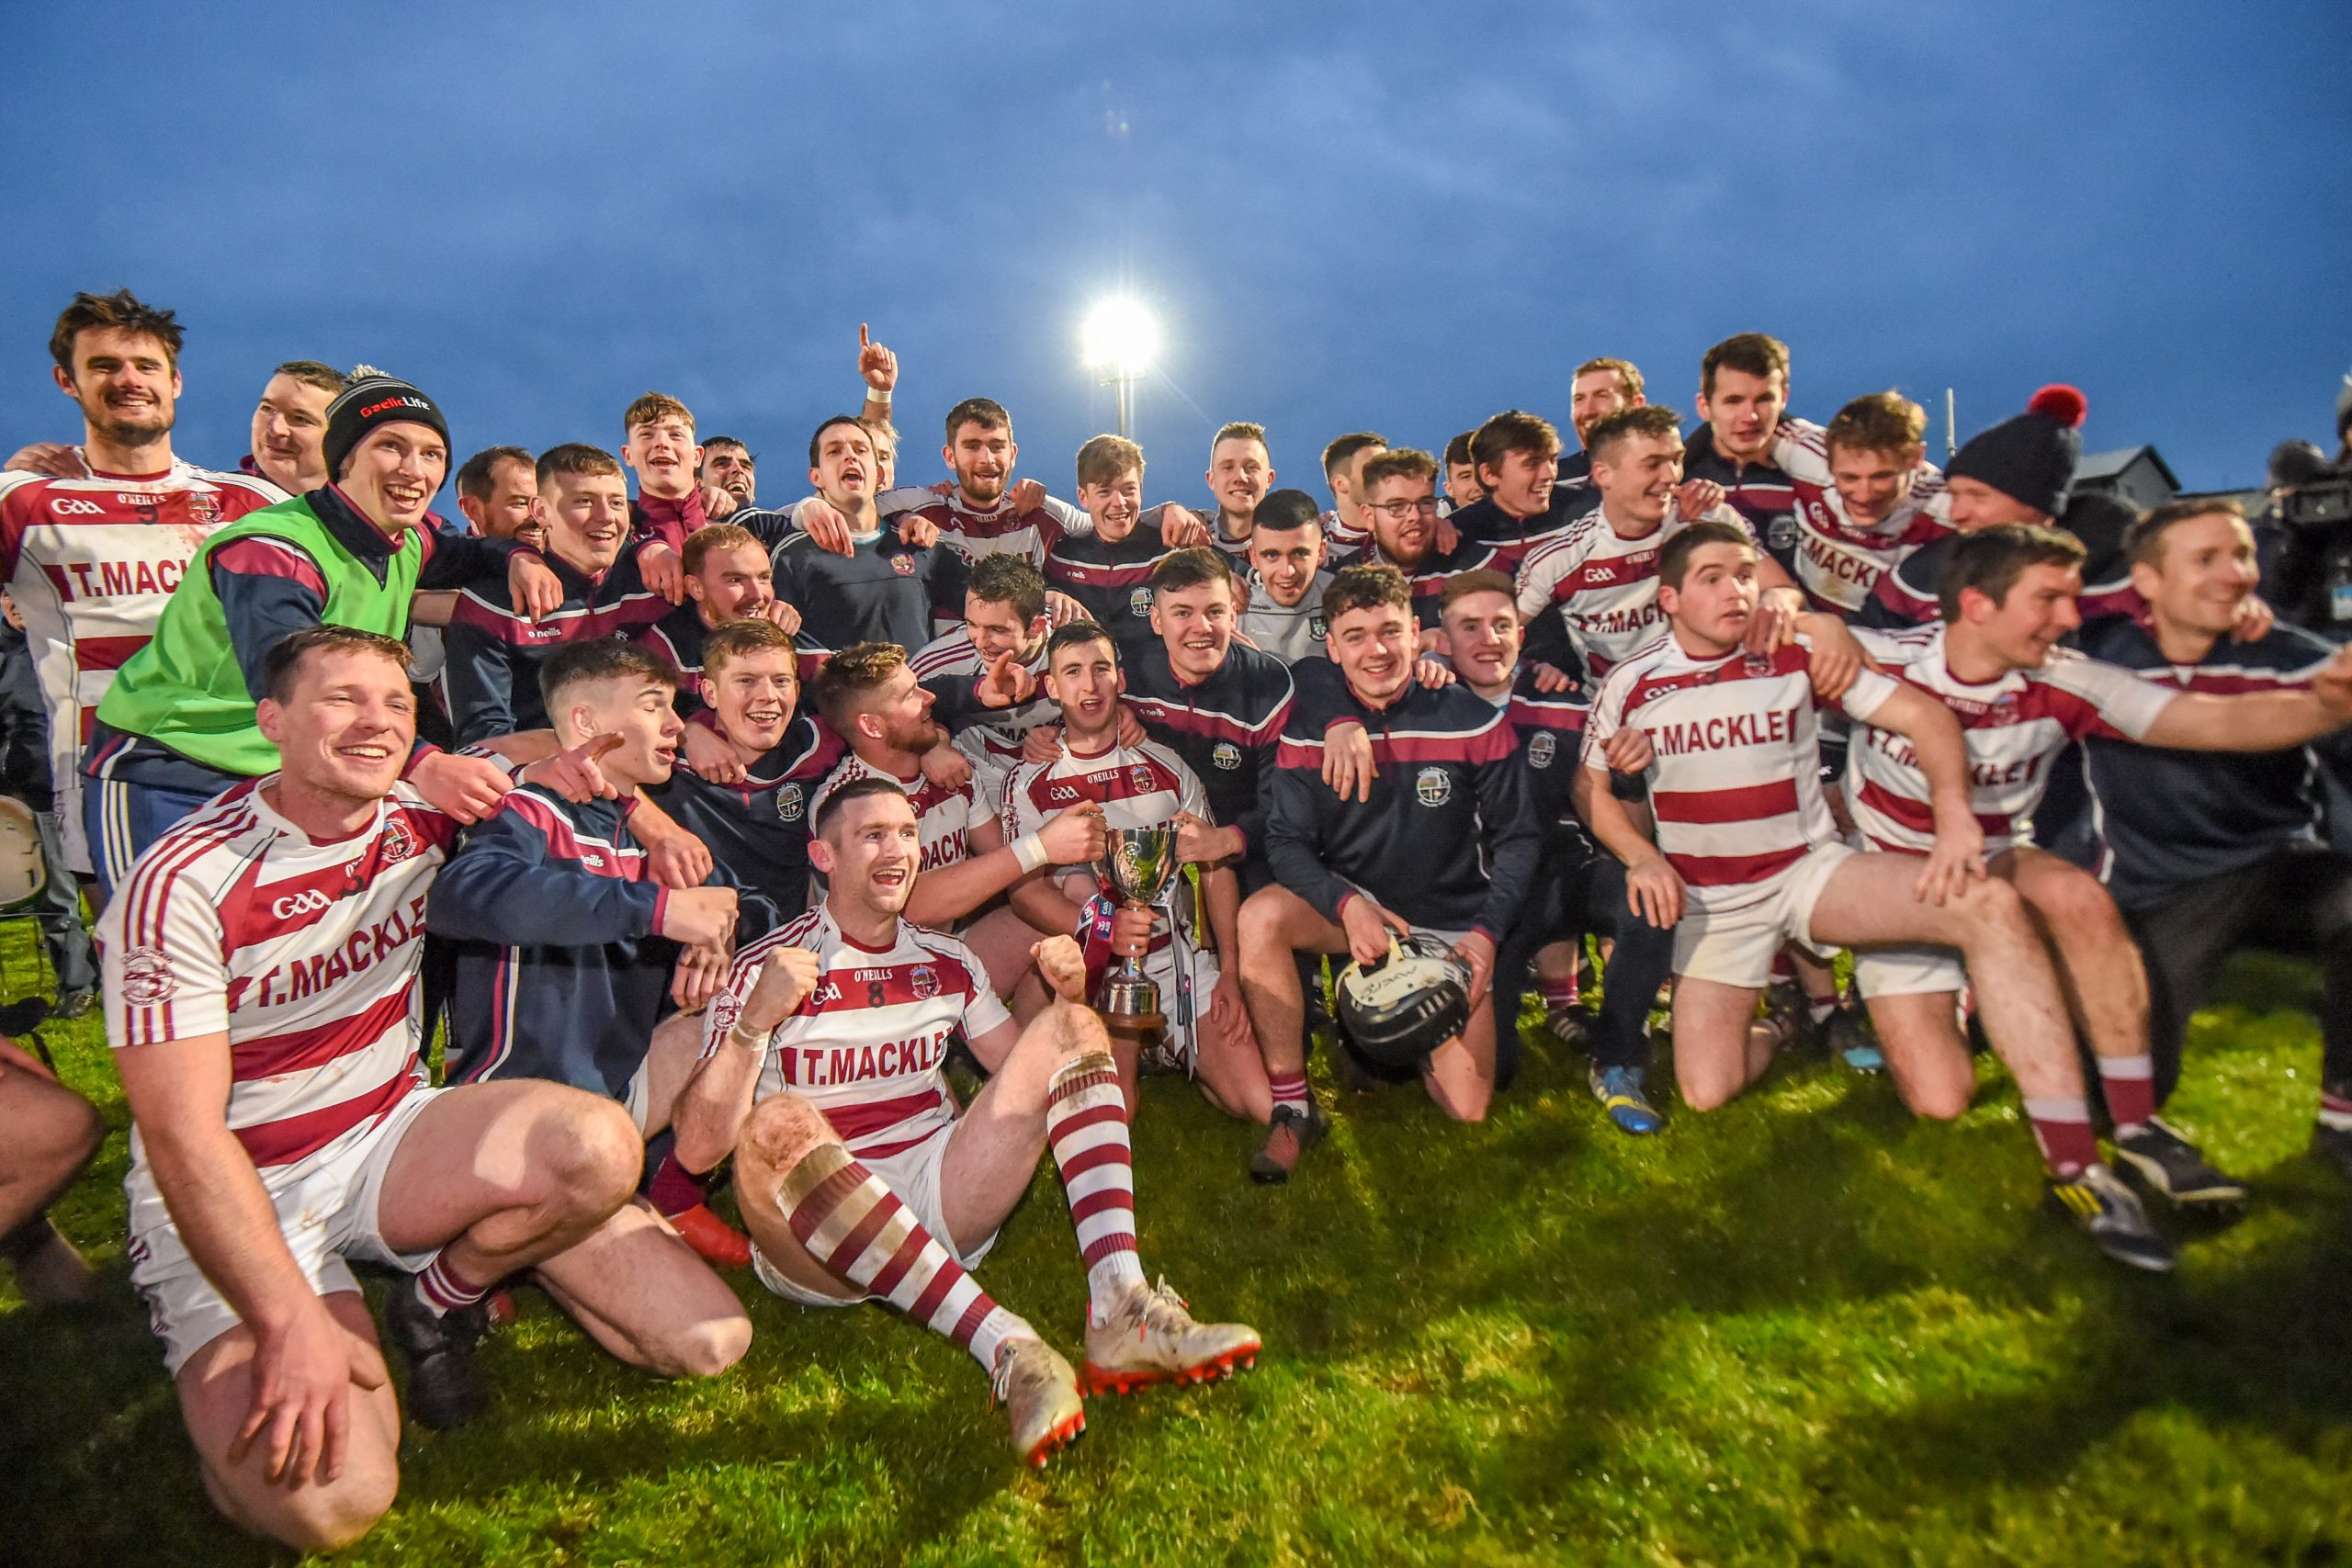 Ulster champions learn All Ireland semi-final fate